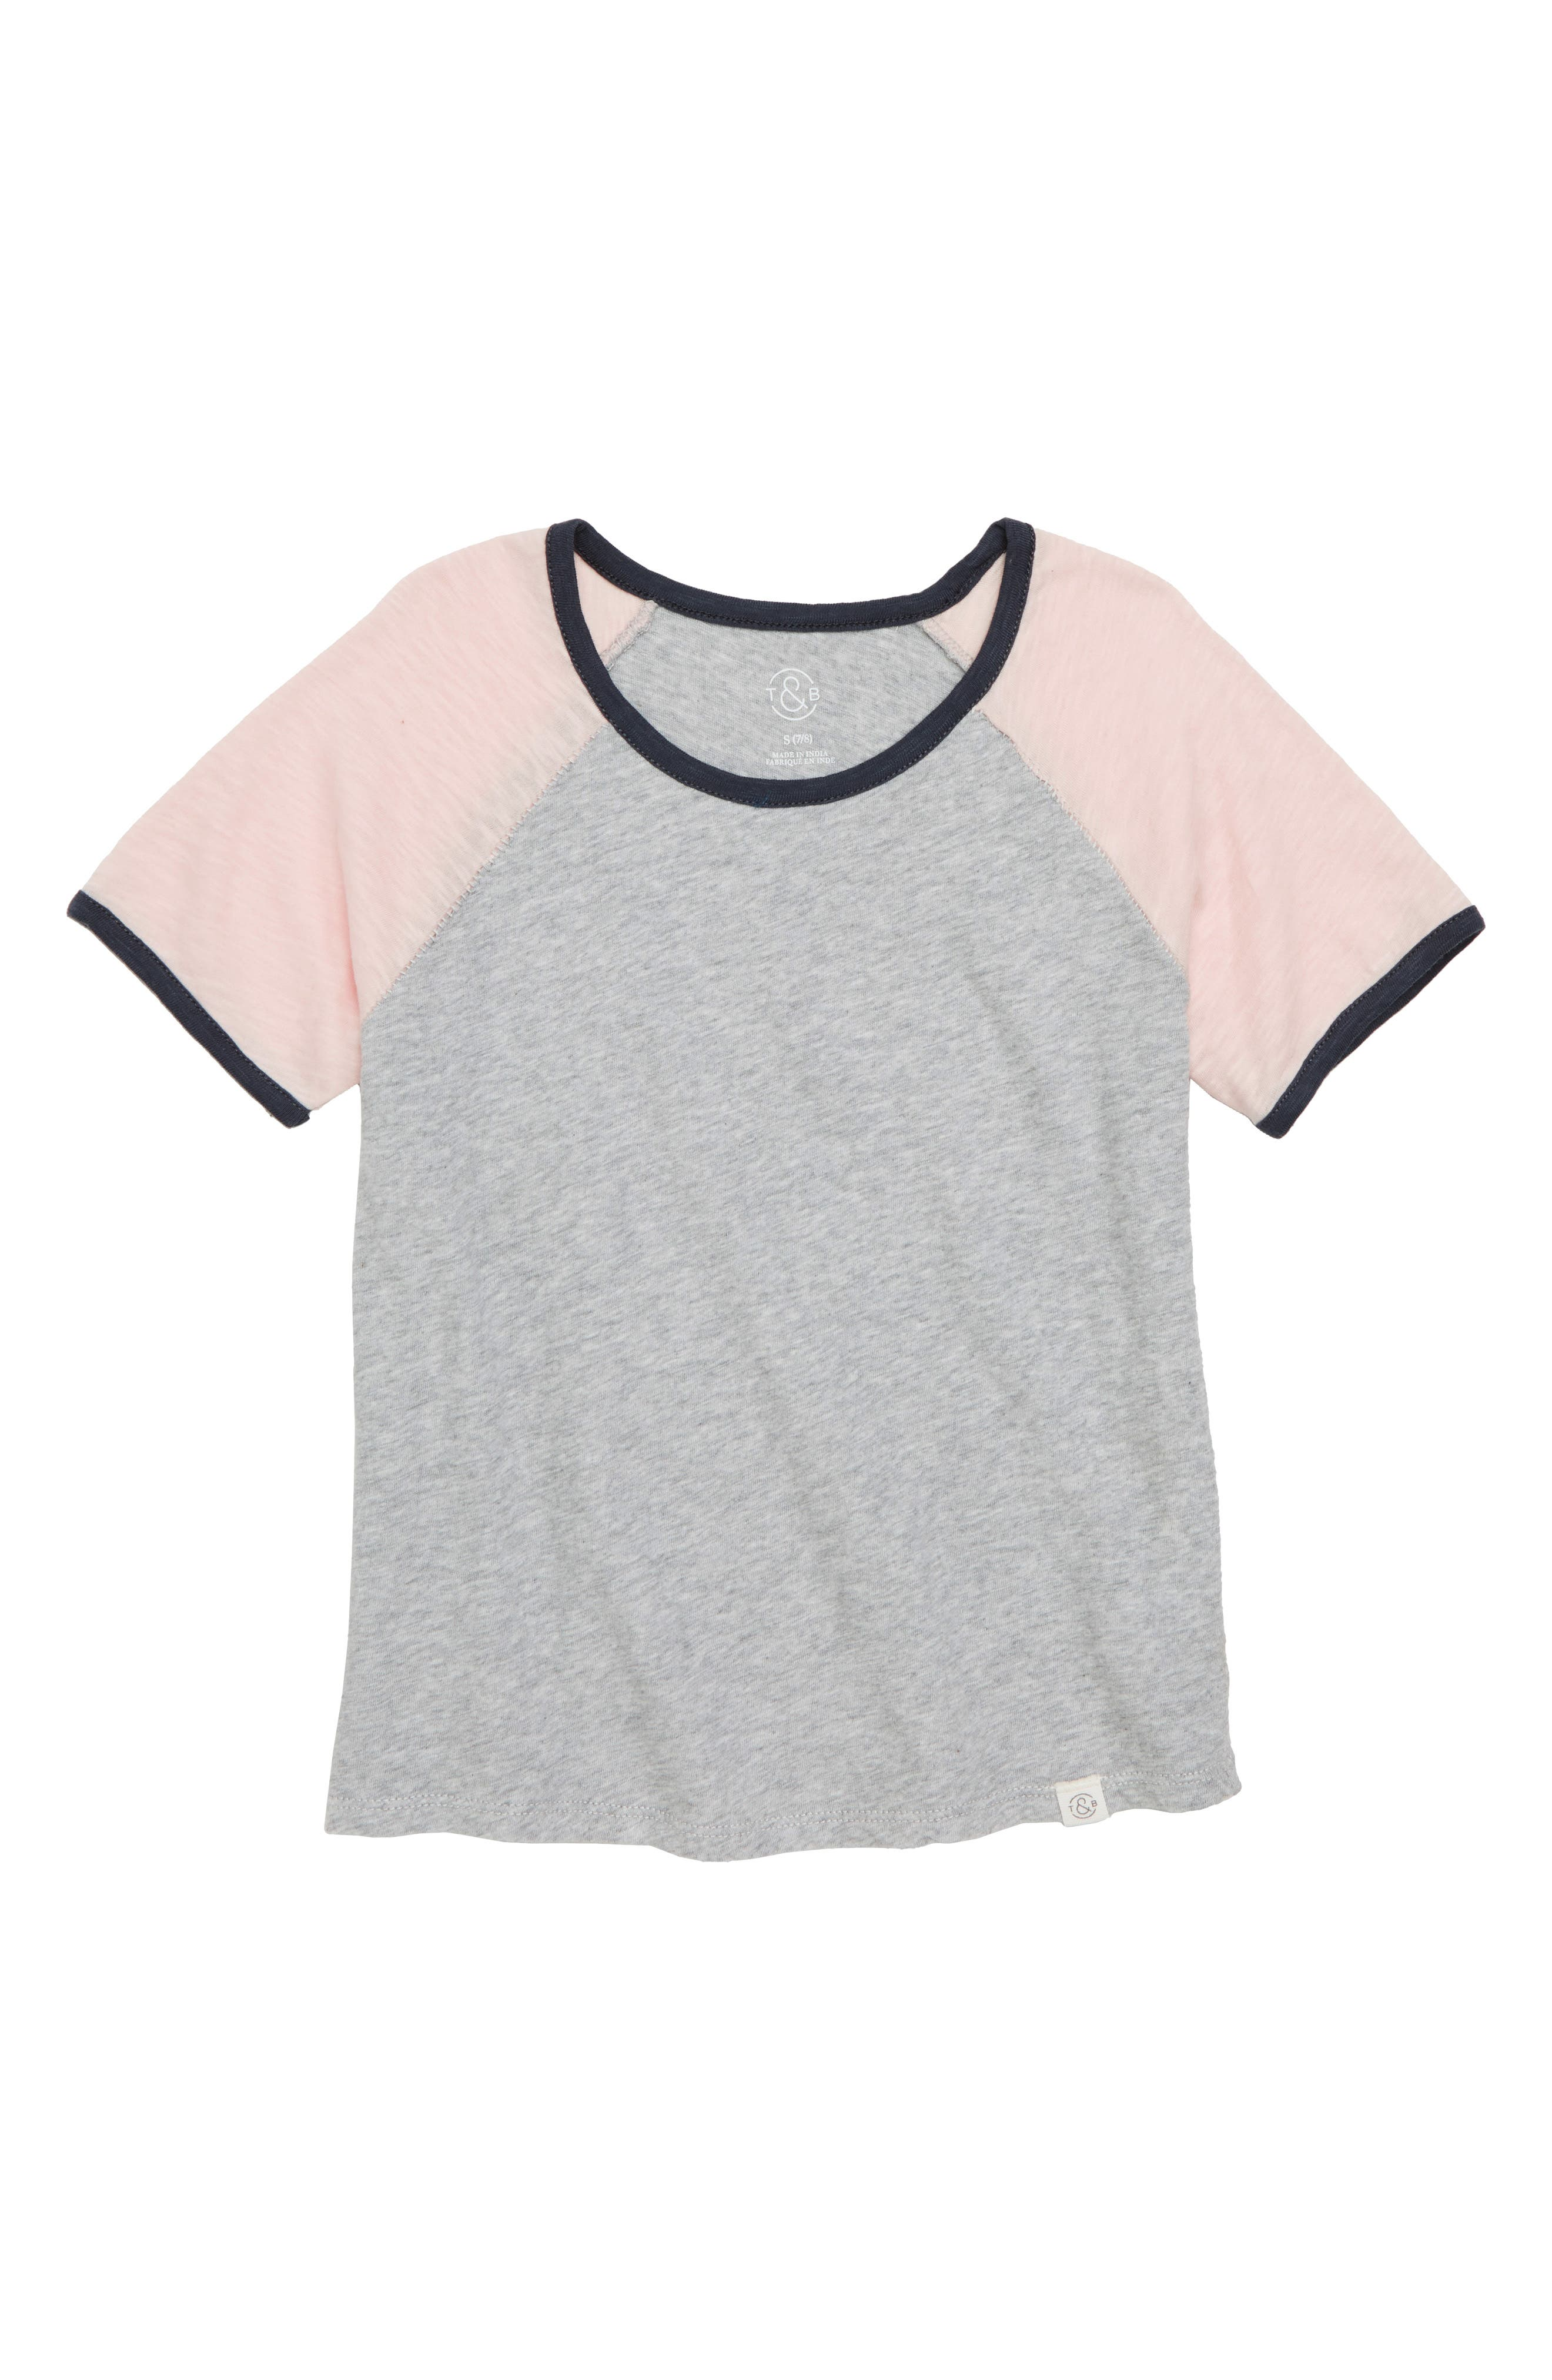 Colorblock Ringer Tee,                             Main thumbnail 1, color,                             050